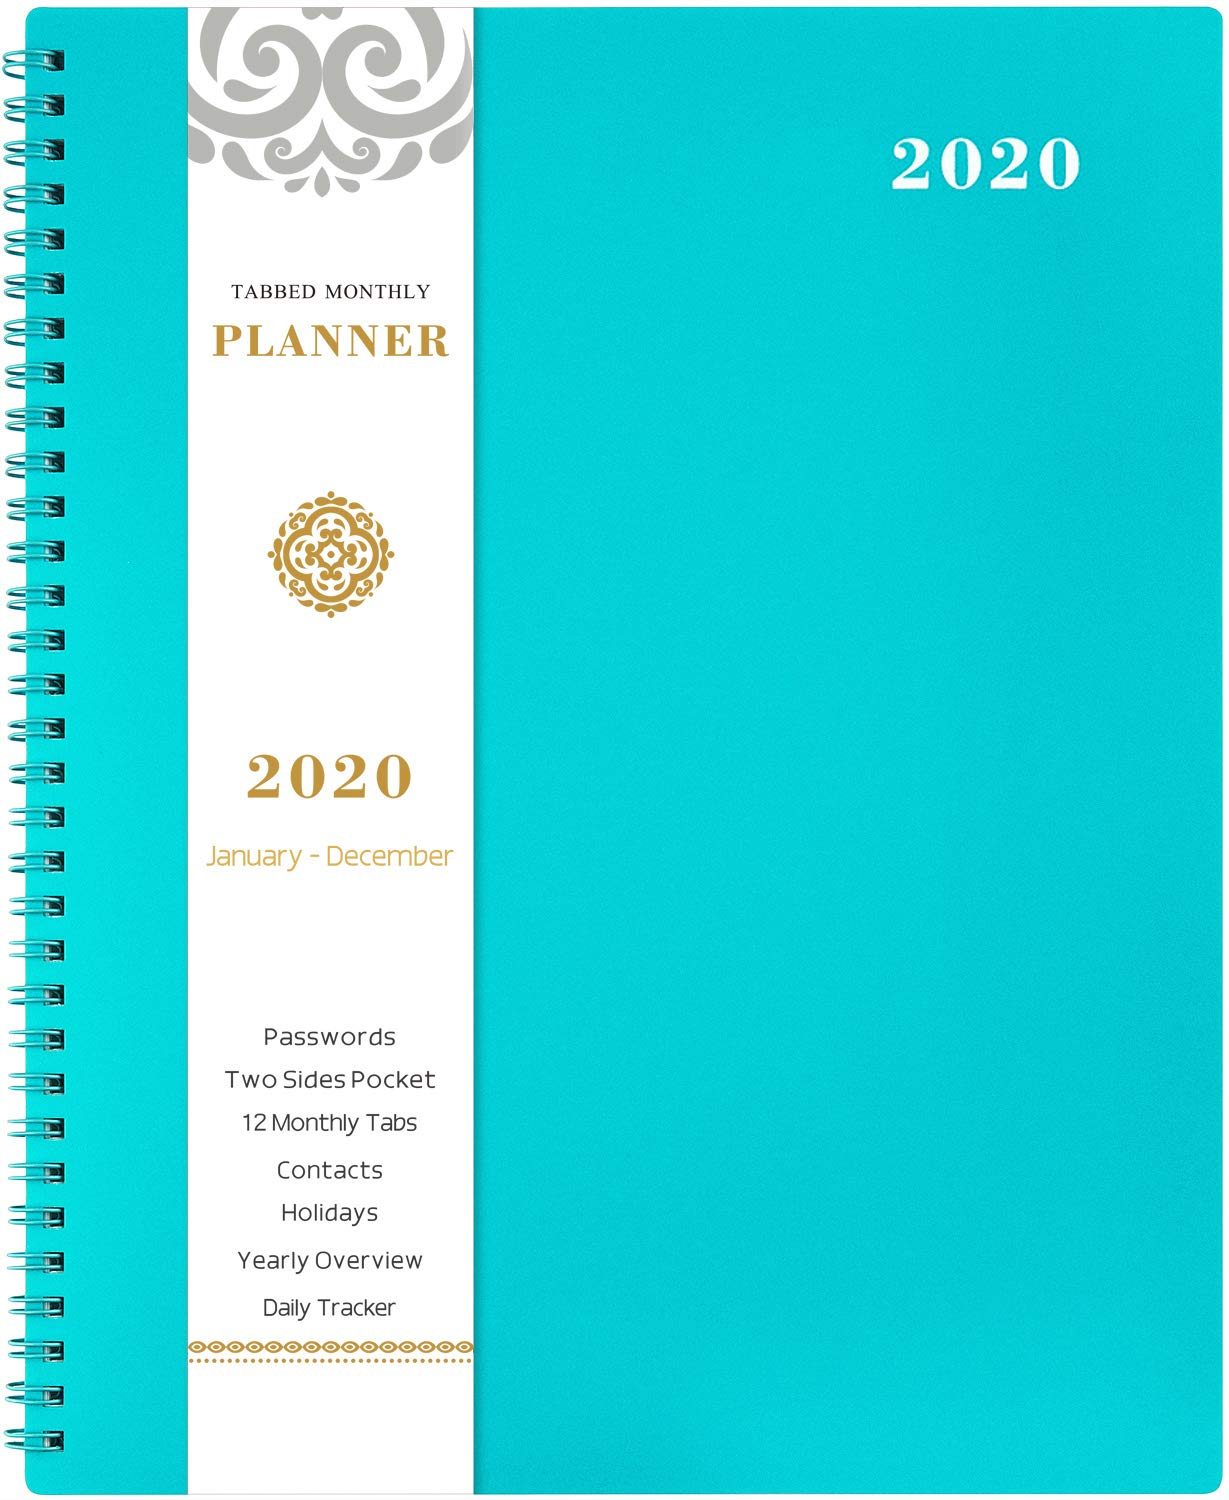 "2020 Monthly Calendar Planner - 12-Month Planner with Tabs & Pocket & Label, Contacts and Passwords, 8.5"" x 11"", Thick Paper, January - December 2020, Twin-Wire Binding - Teal by Artfan"